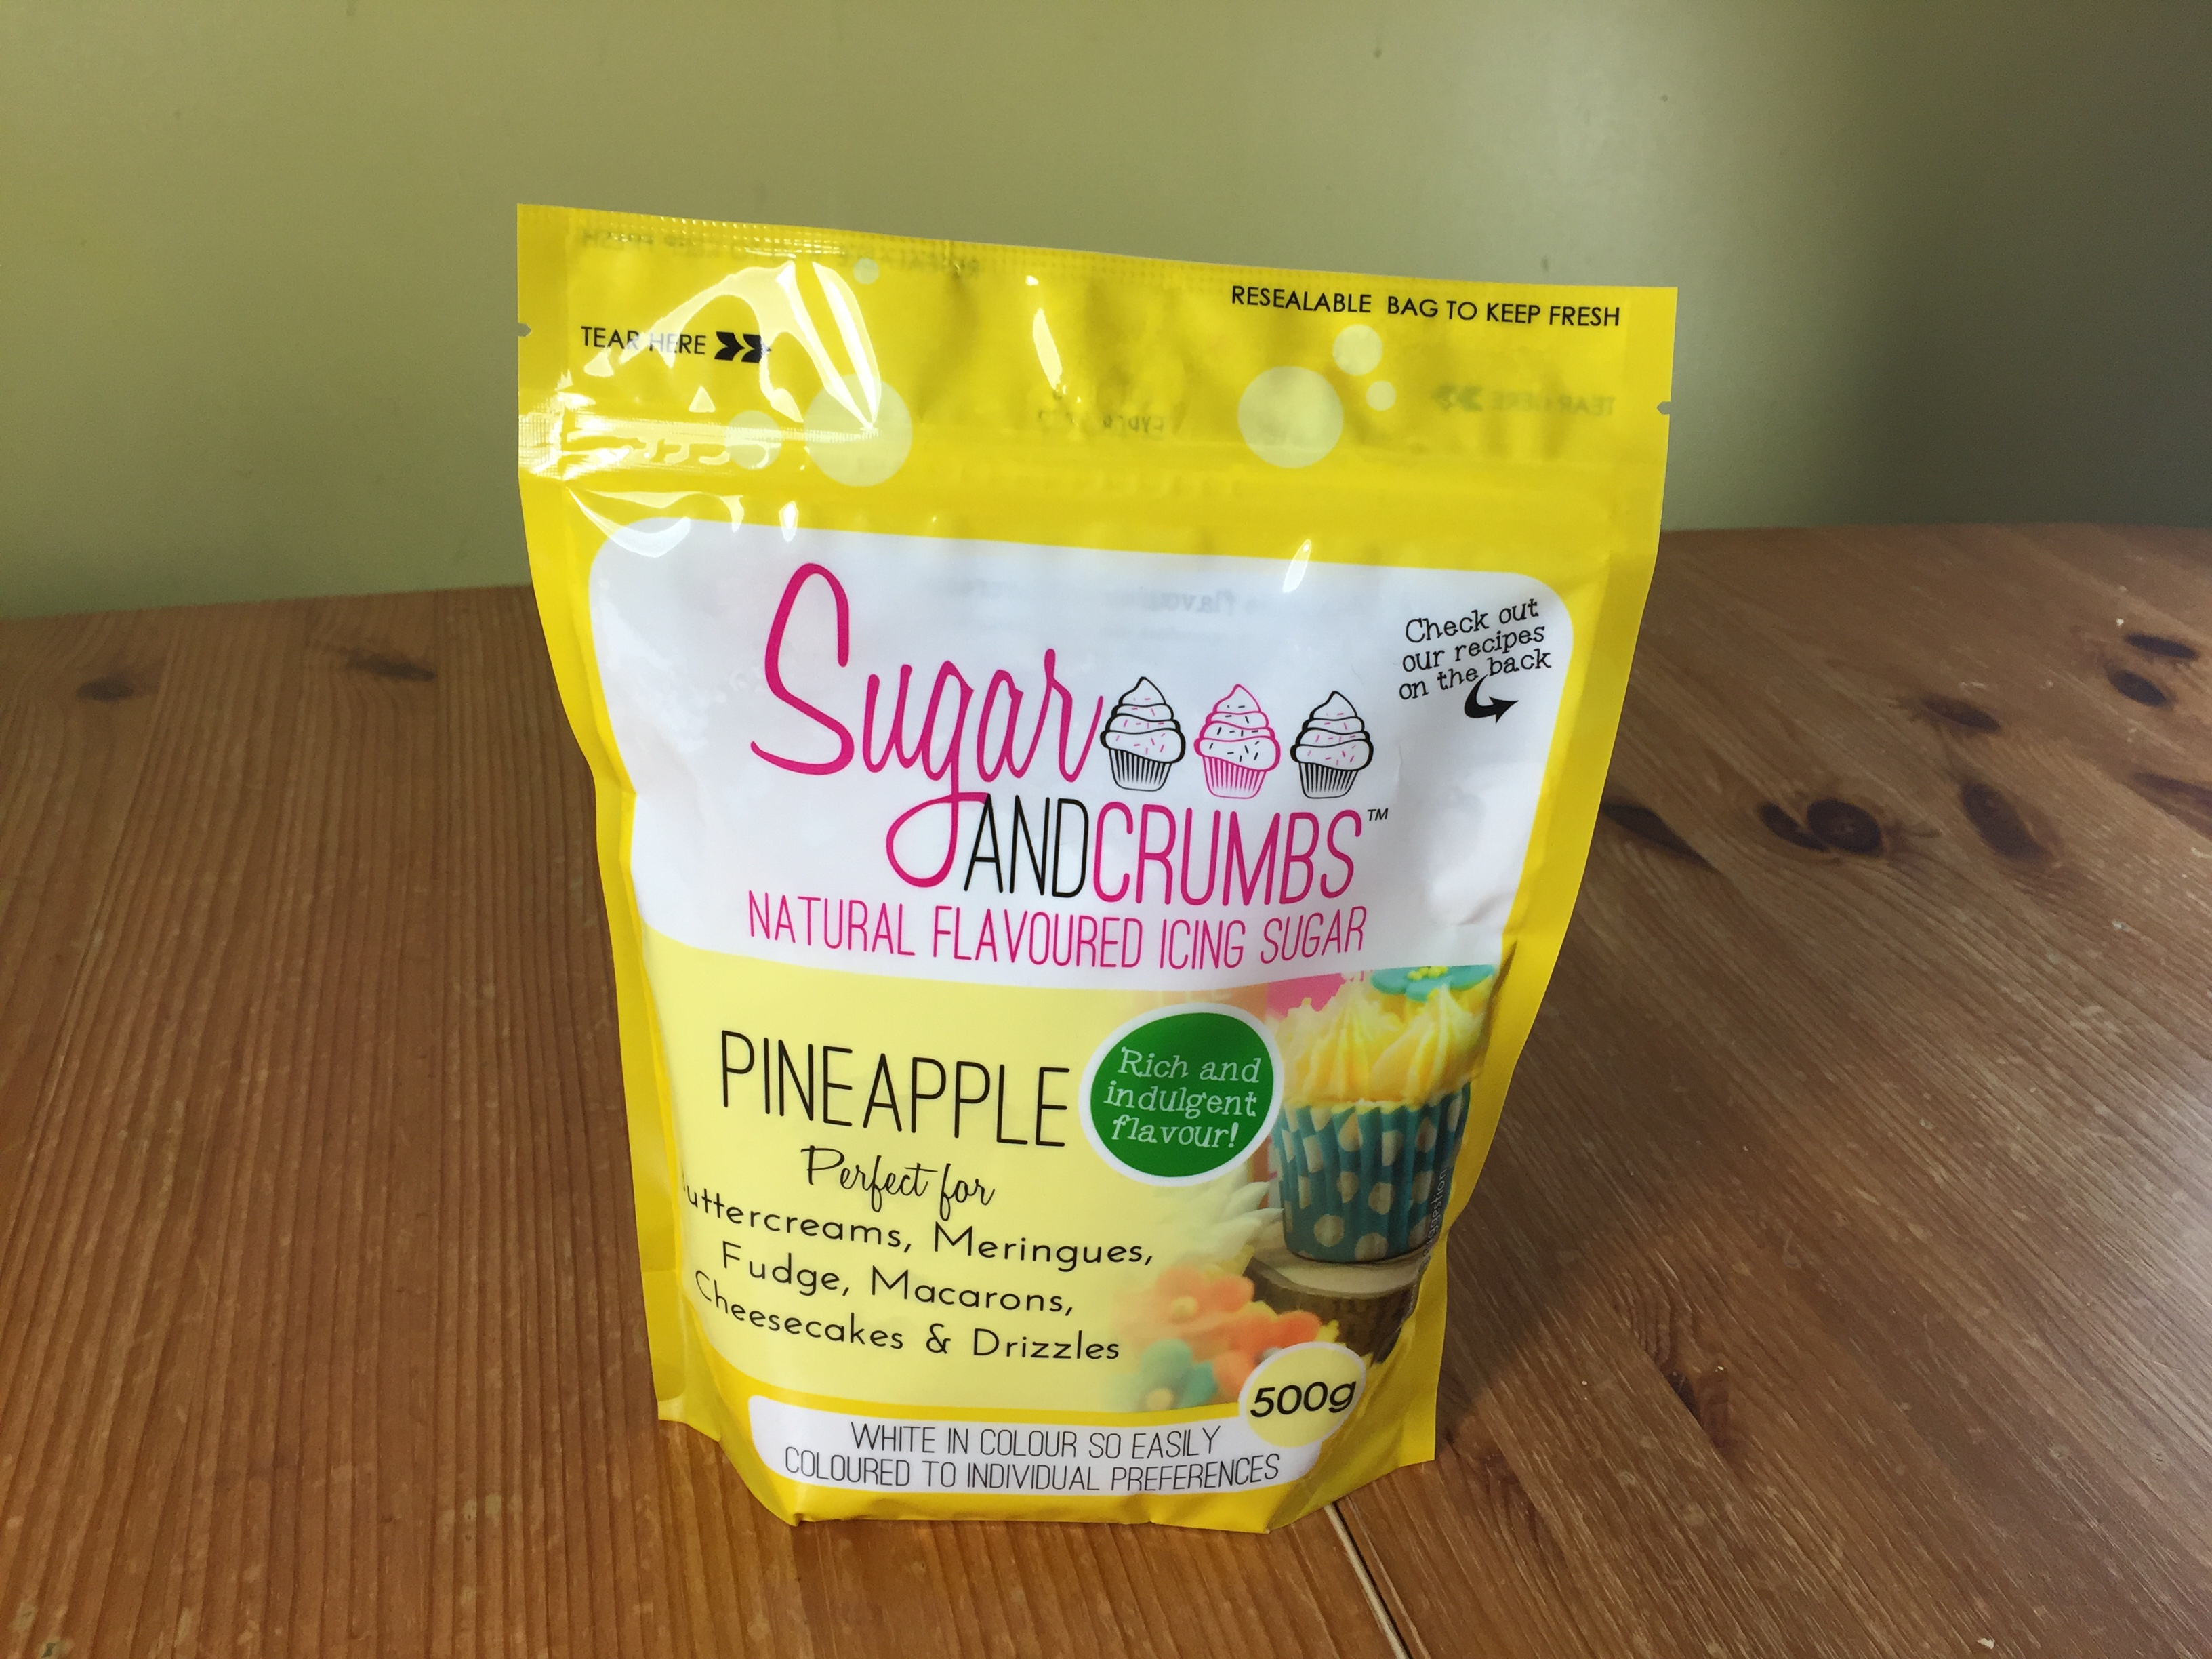 Pineapple flavoured icing sugar